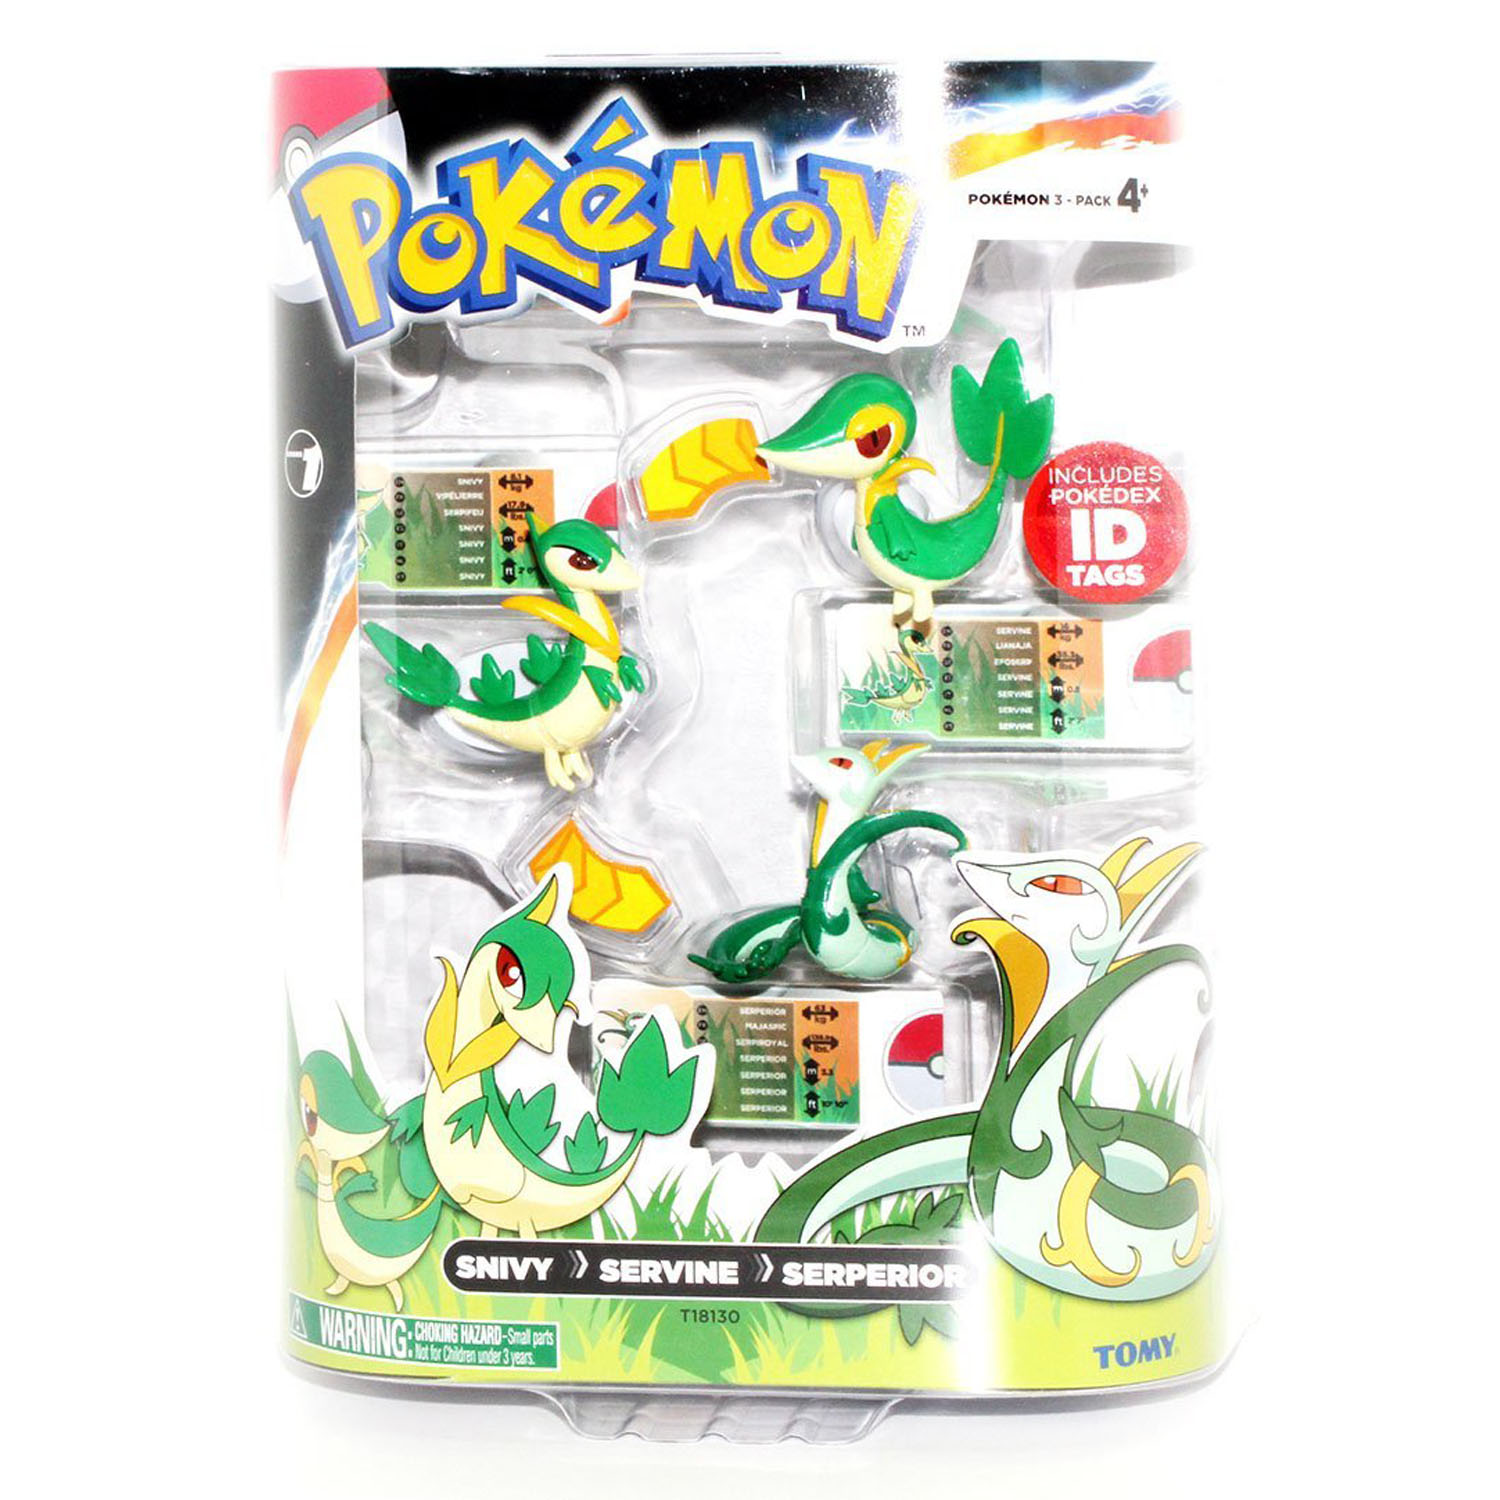 My Little Pony Home Decor Pokemon Toys Snivy Servine Serperior 3 Pack At Toystop